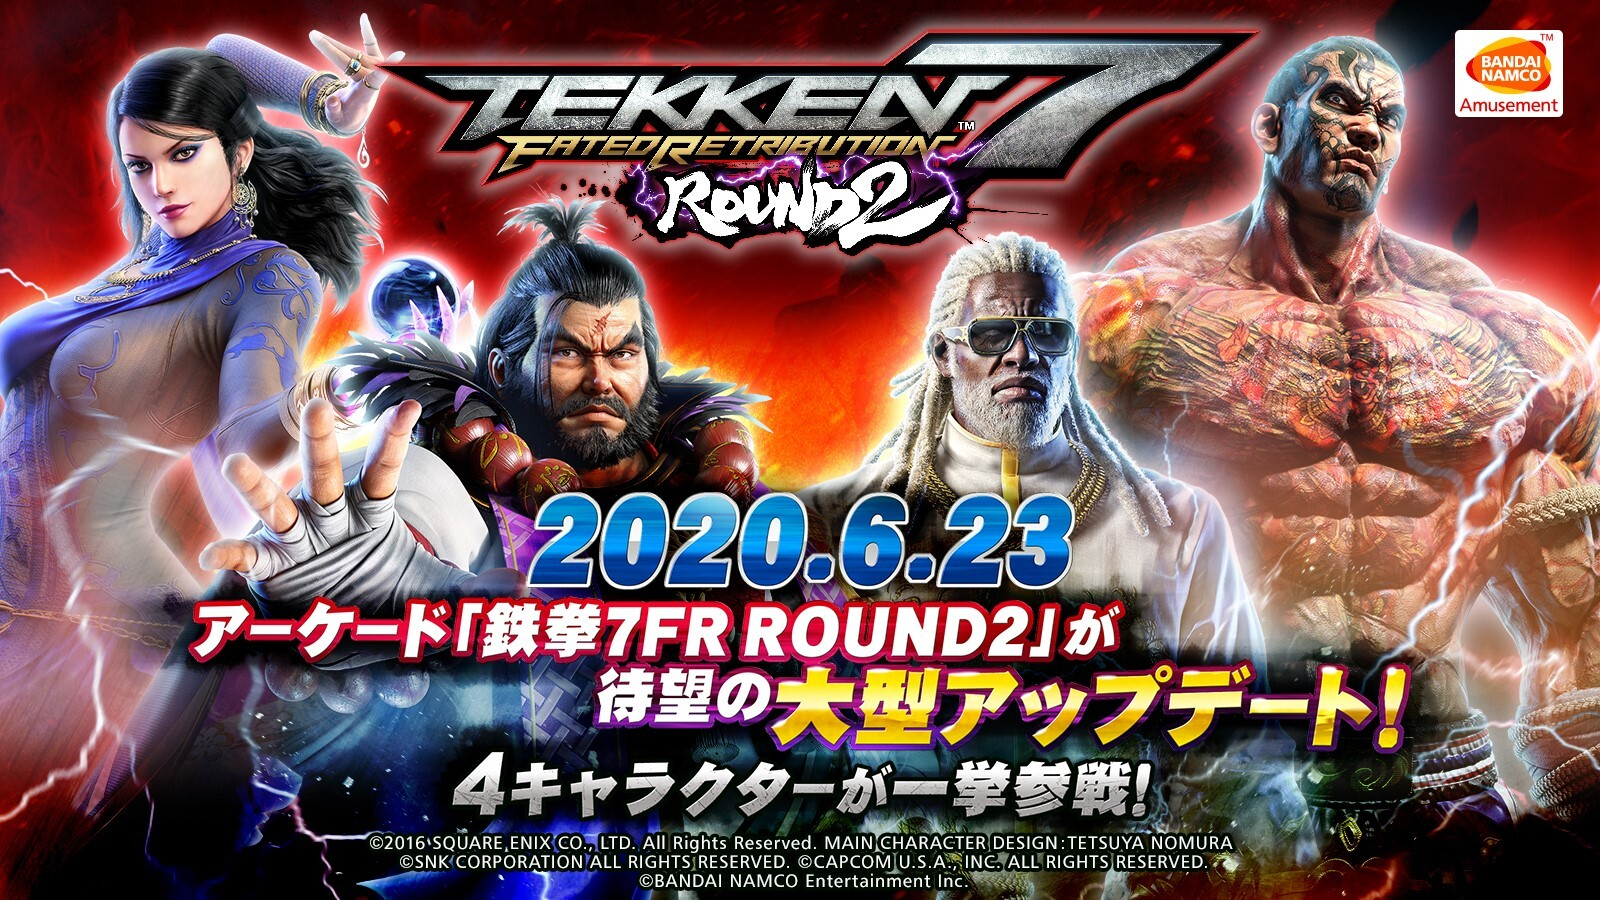 Large Scale Update For Arcade Tekken 7 Fated Retribution Round 2 Launches June 23 News Avoiding The Puddle